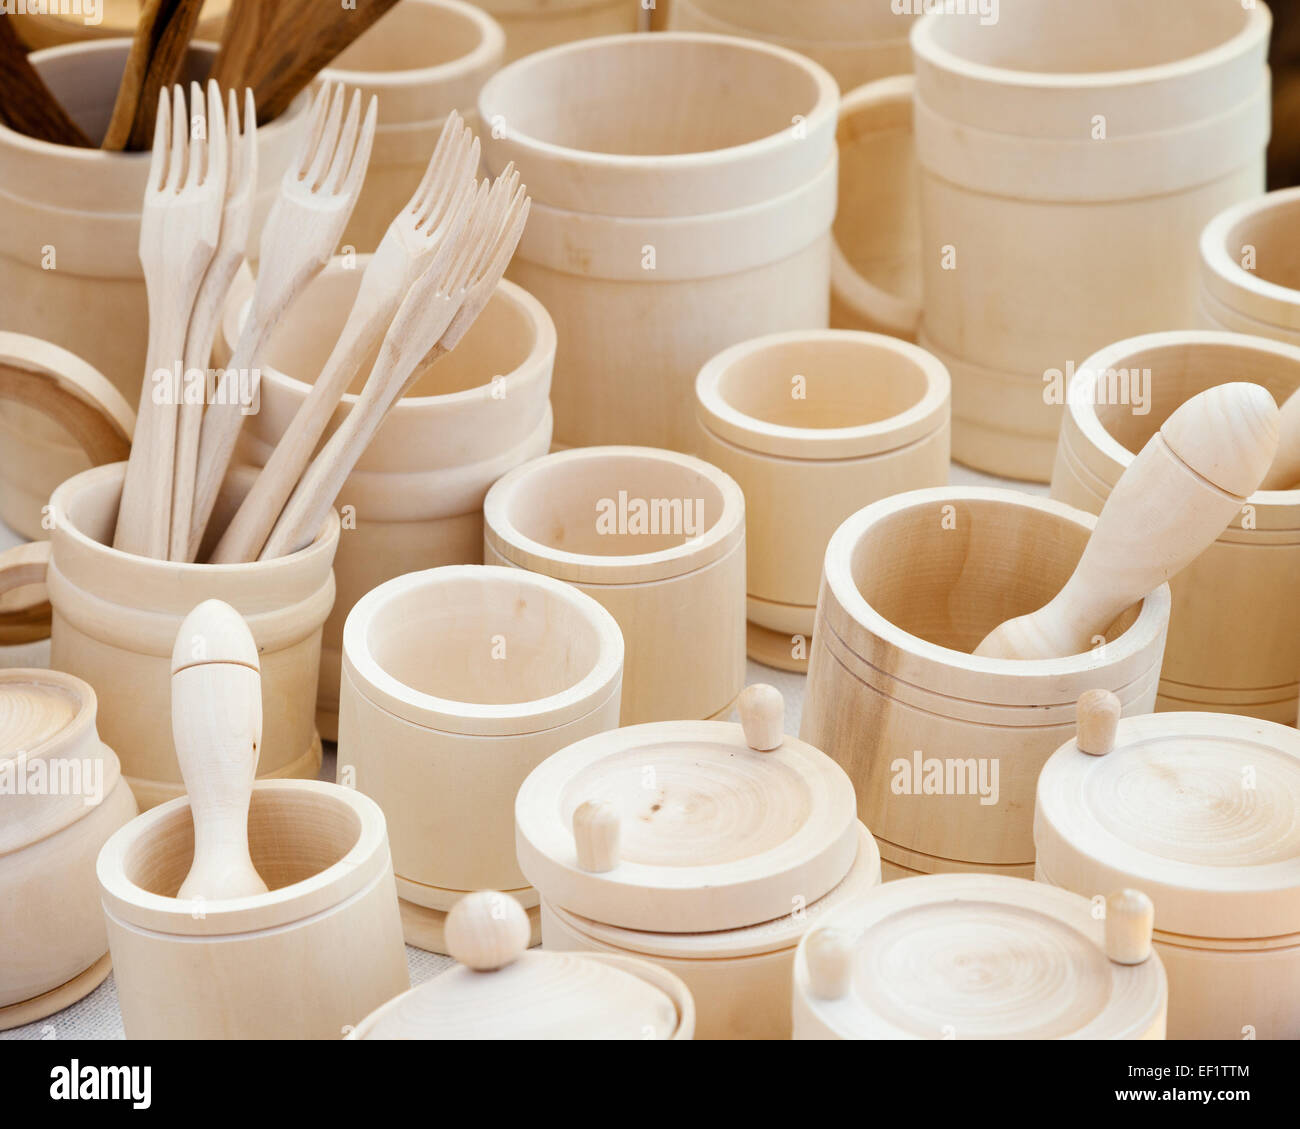 wooden kitchen utensils assortment - Stock Image